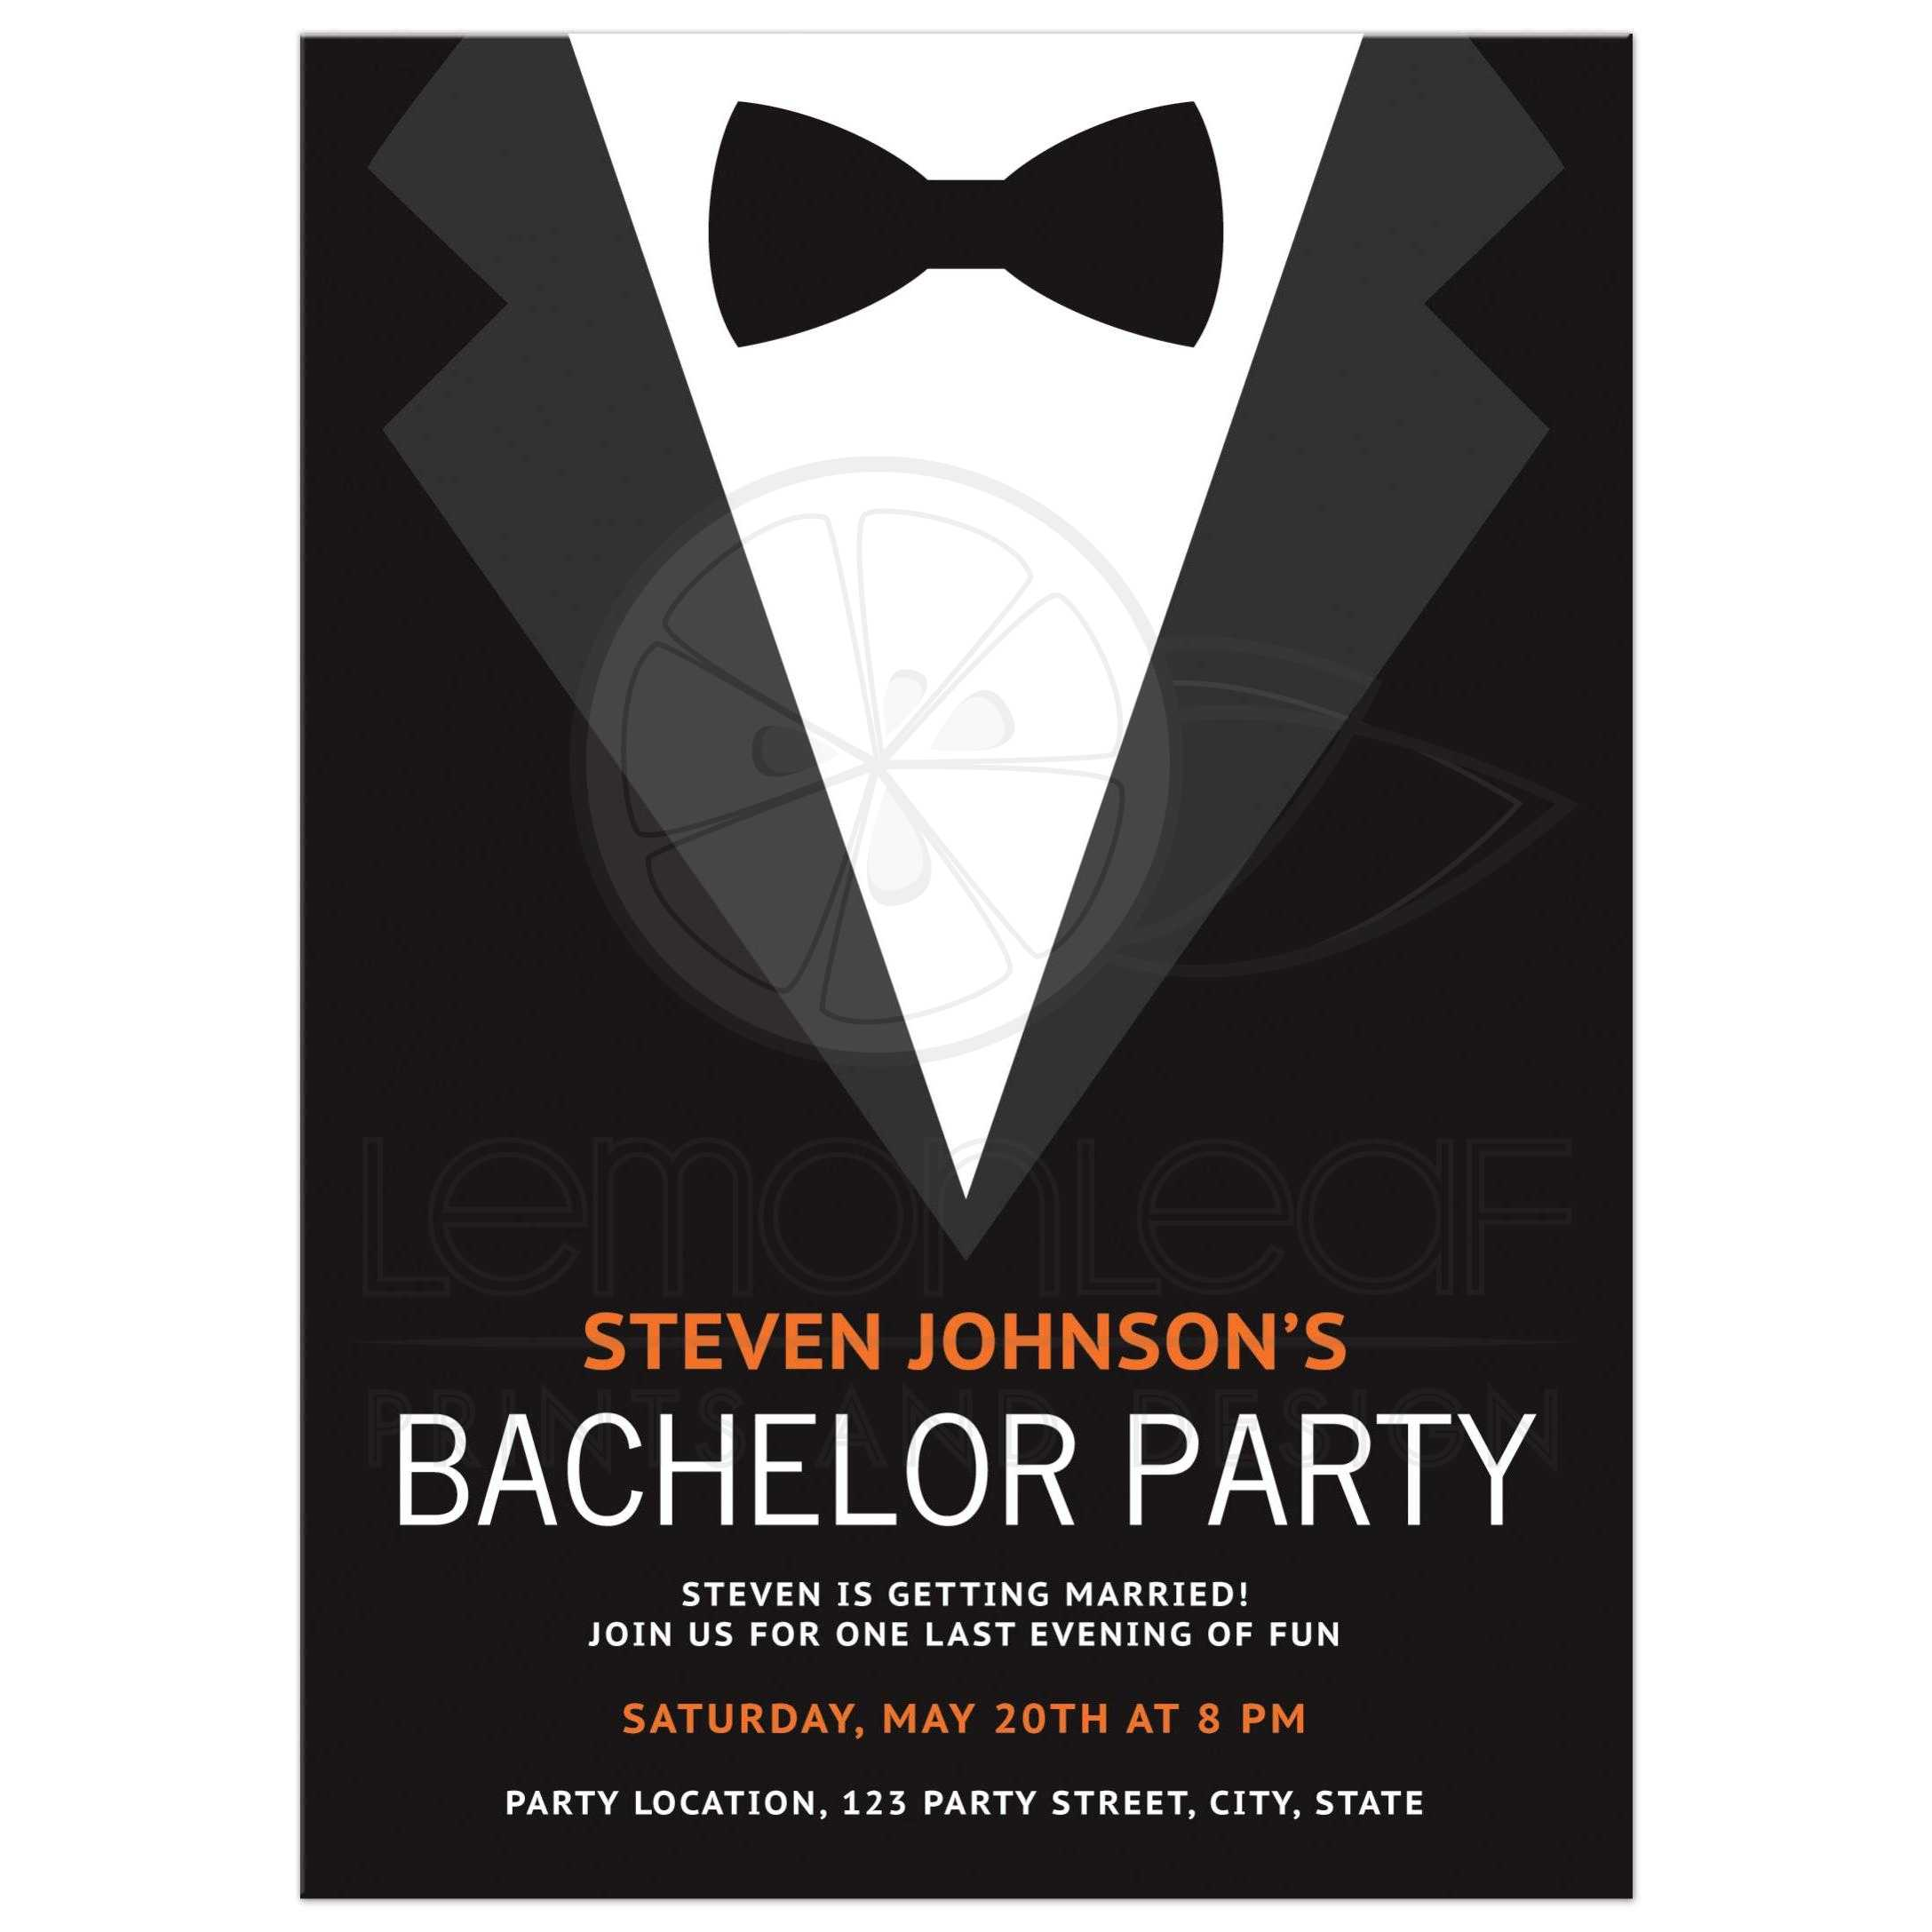 Affordable bachelor party invitations bachelor party invitation with bow tie monicamarmolfo Choice Image